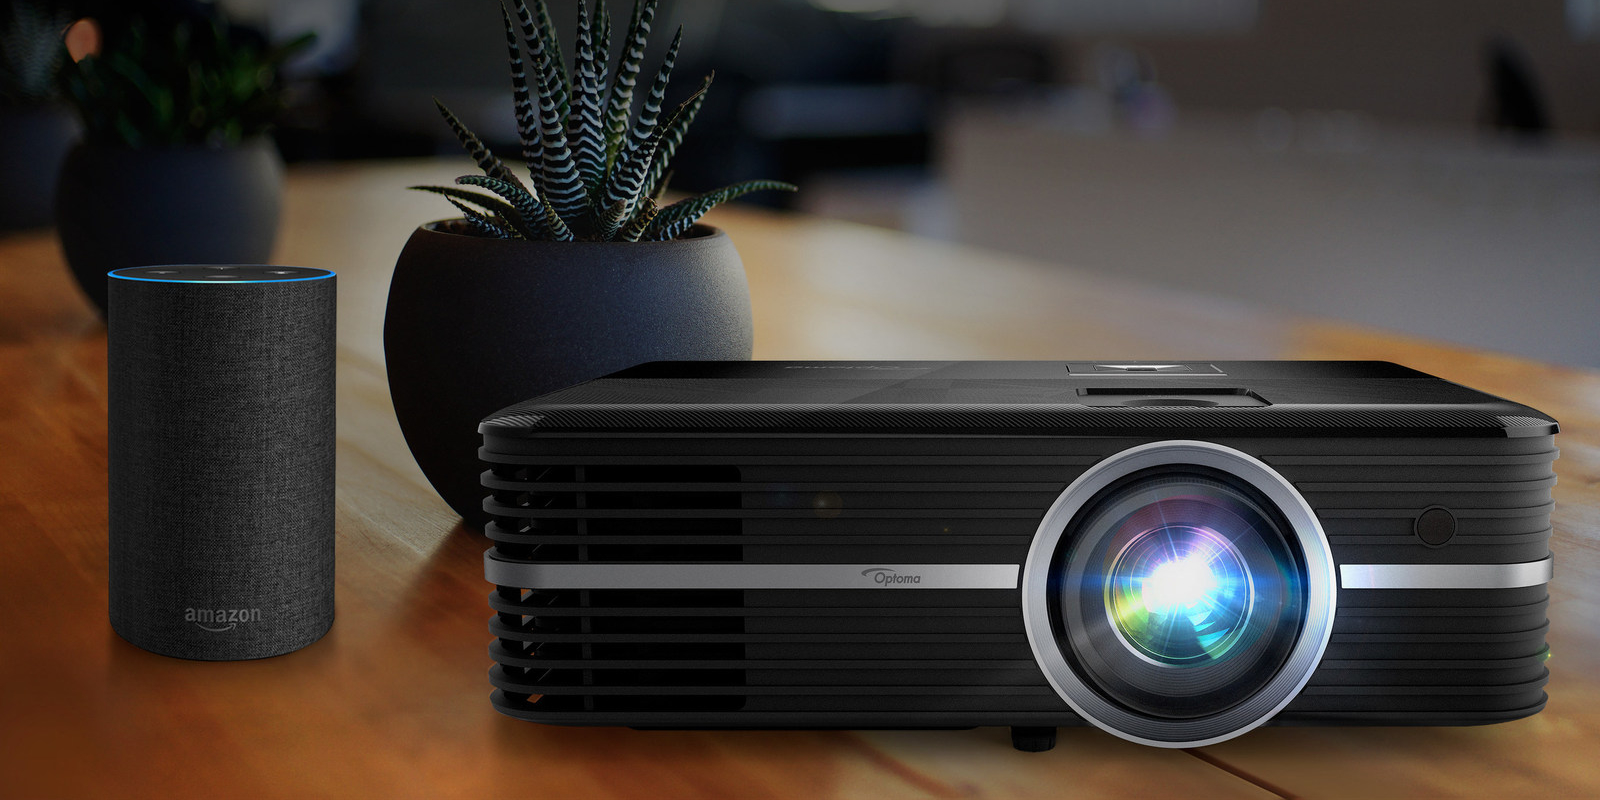 Optoma pressures competitors with its new Alexa-enabled UHD projector